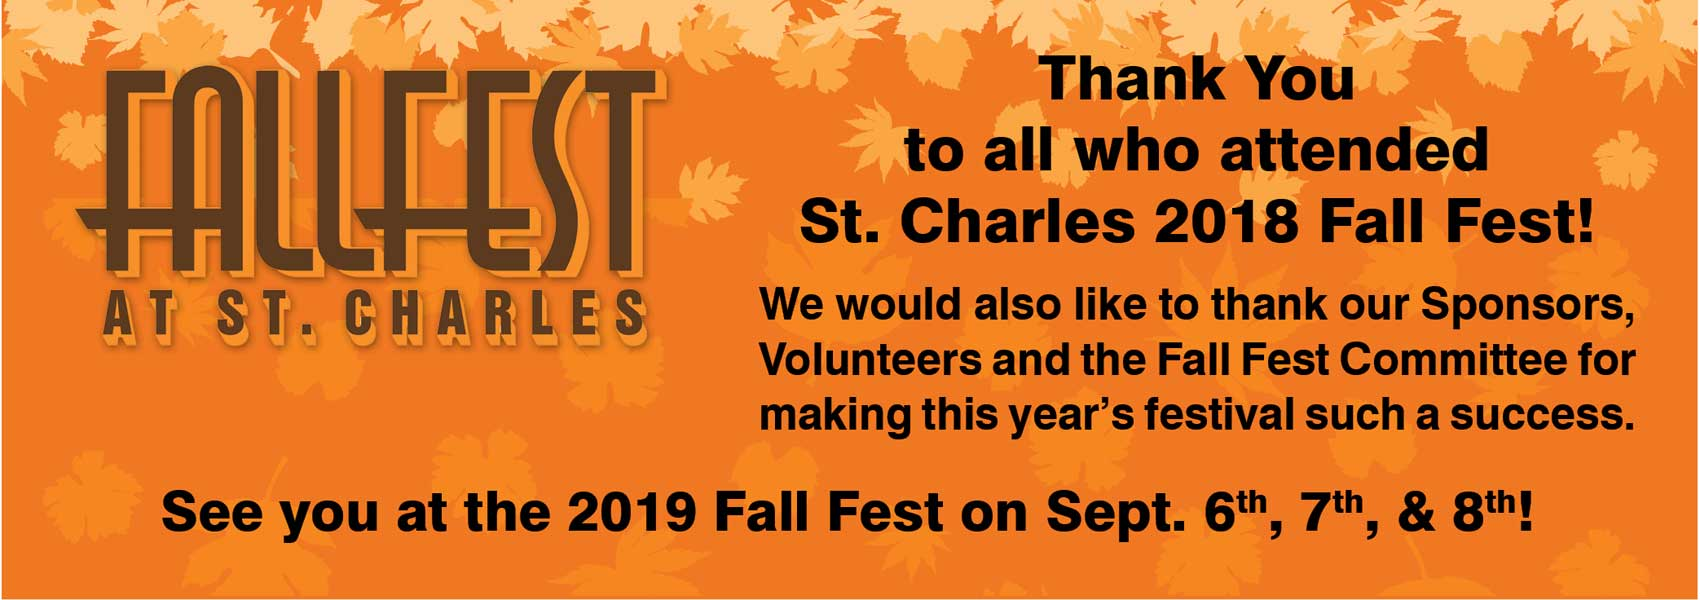 St. Charles Fall Fest 2018 Thank You